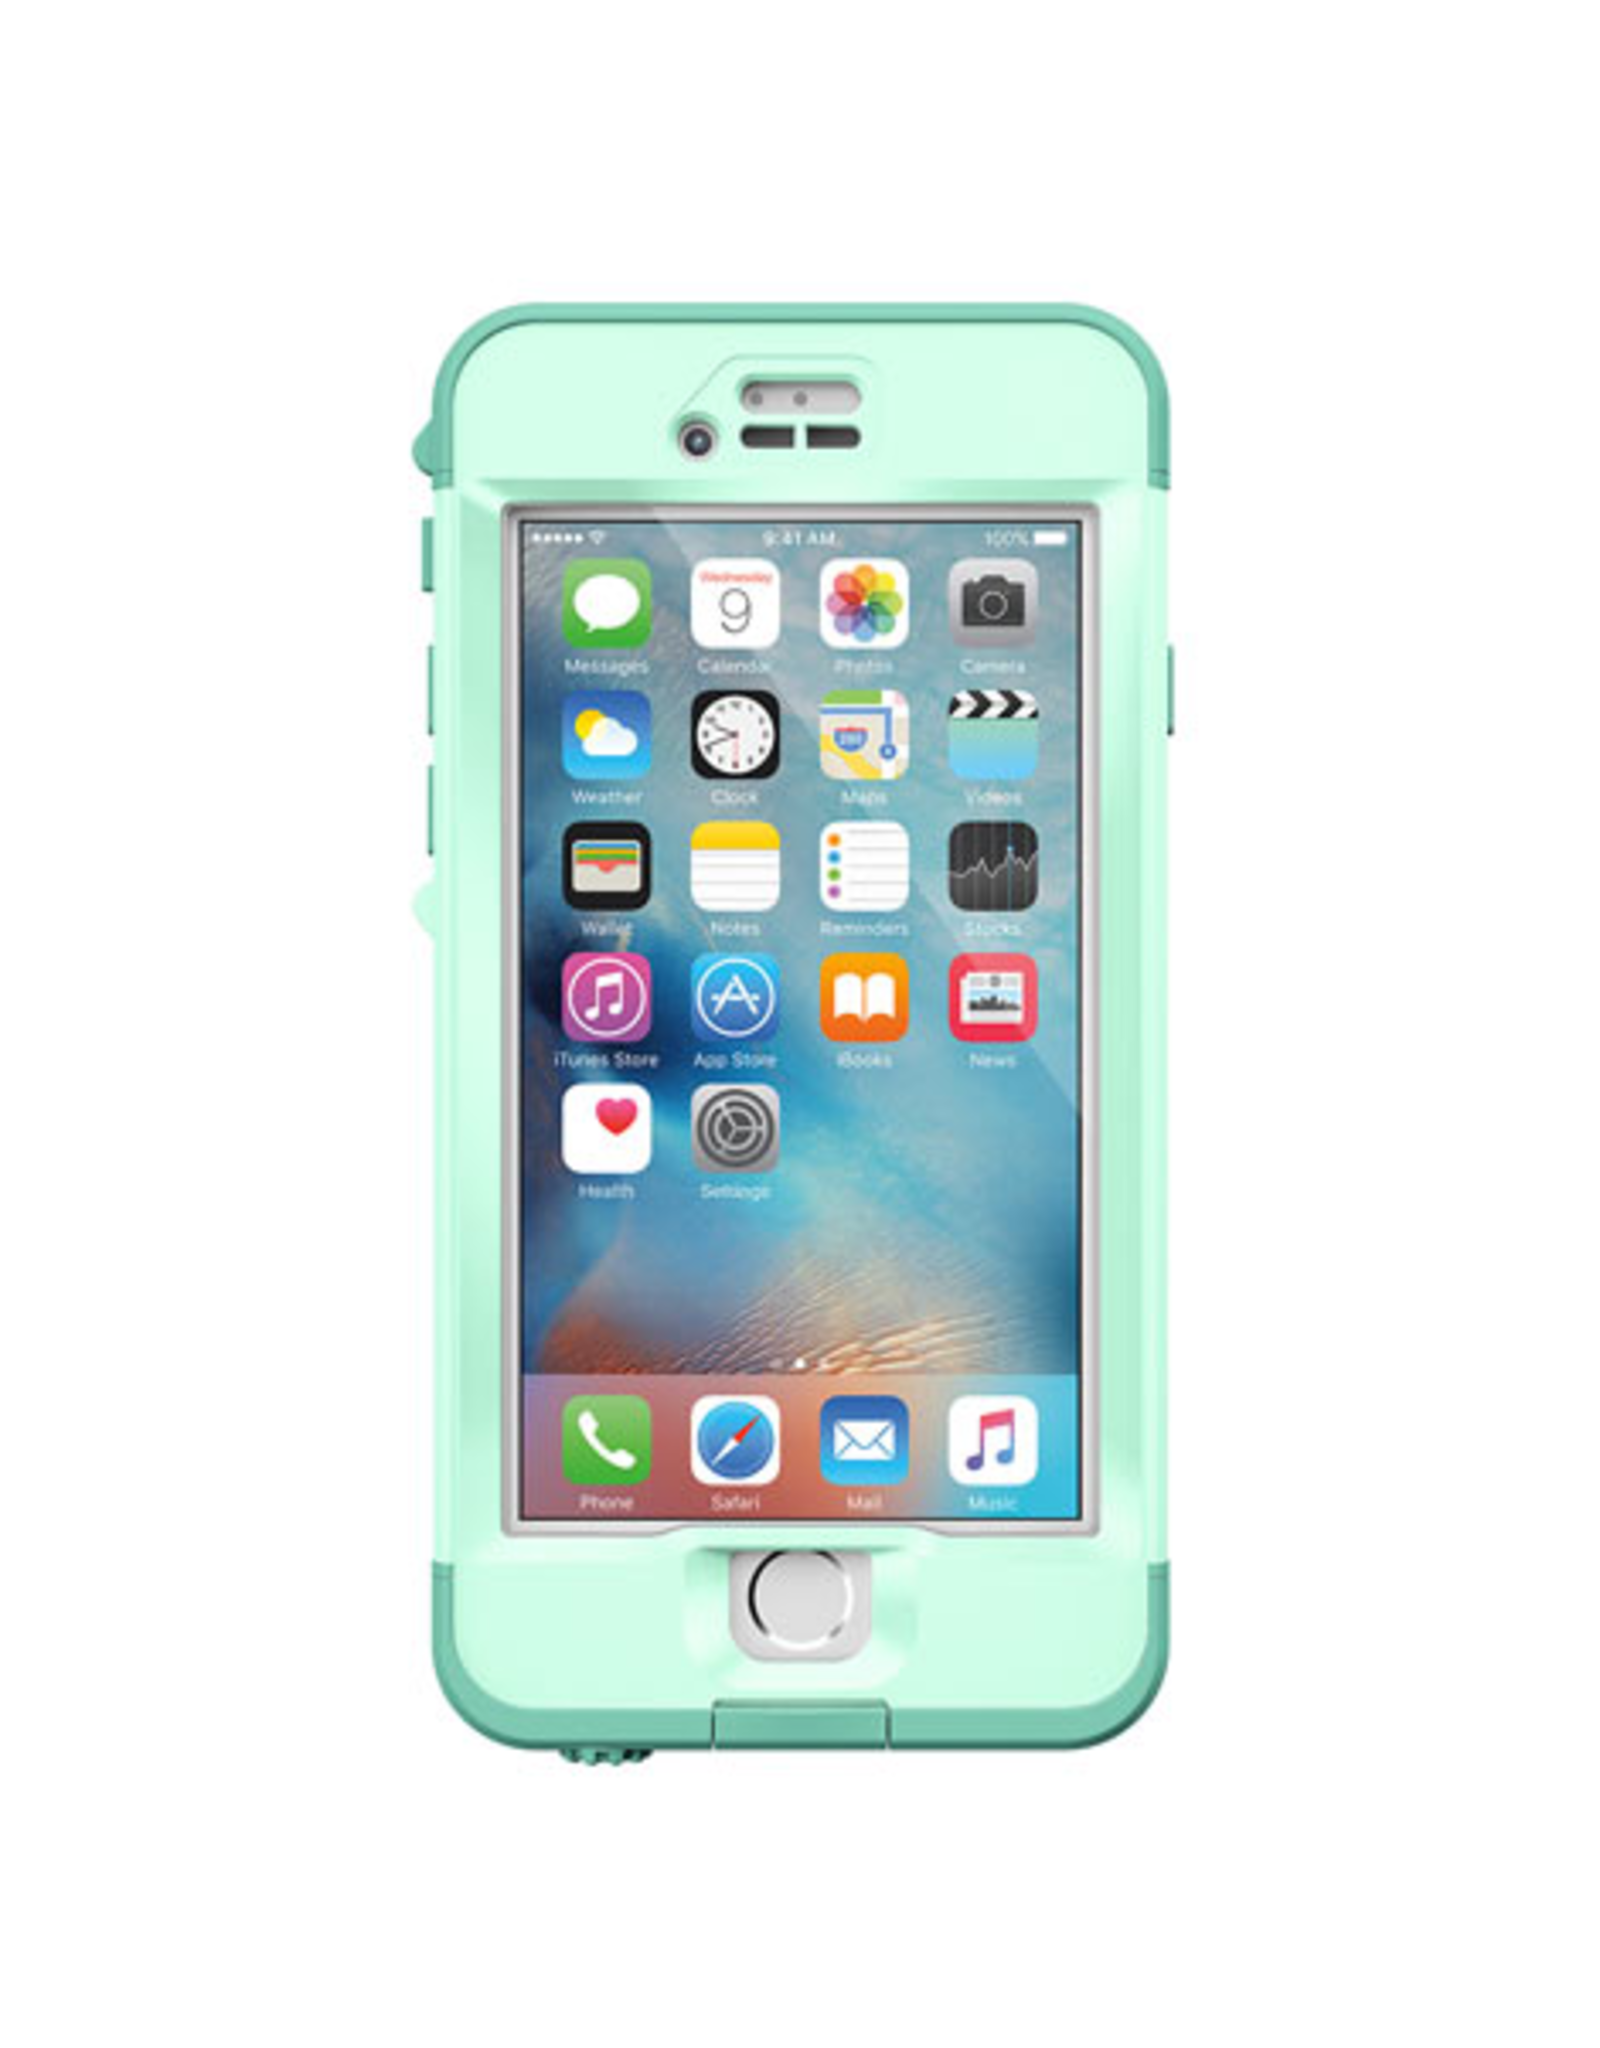 Lifeproof LifeProof Nuud Case suits iPhone 6S Plus - Undertow Aqua